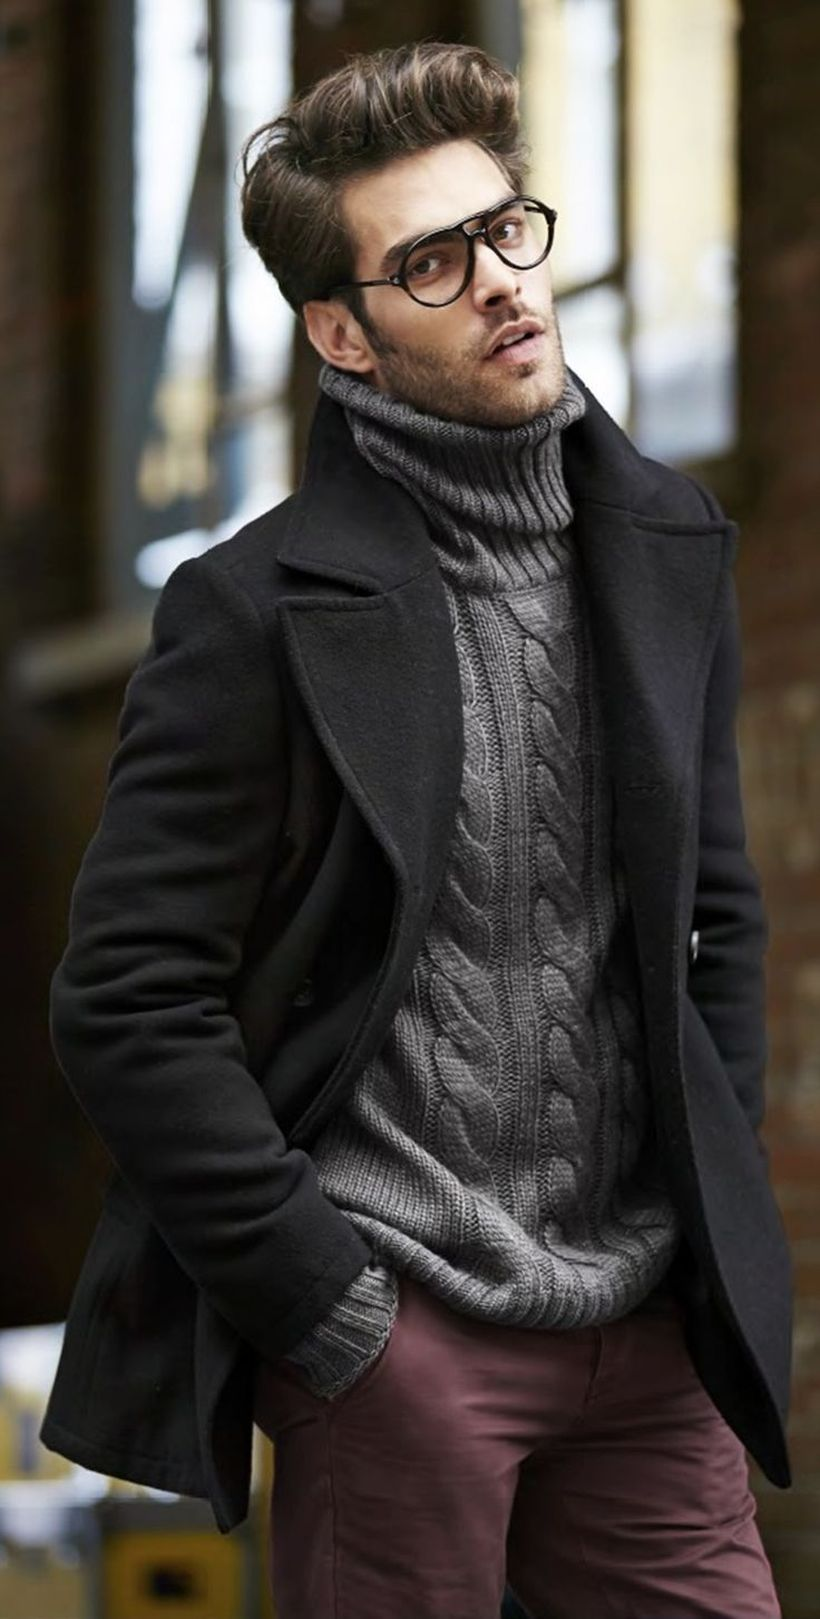 Cool men sweater outfits ideas 15